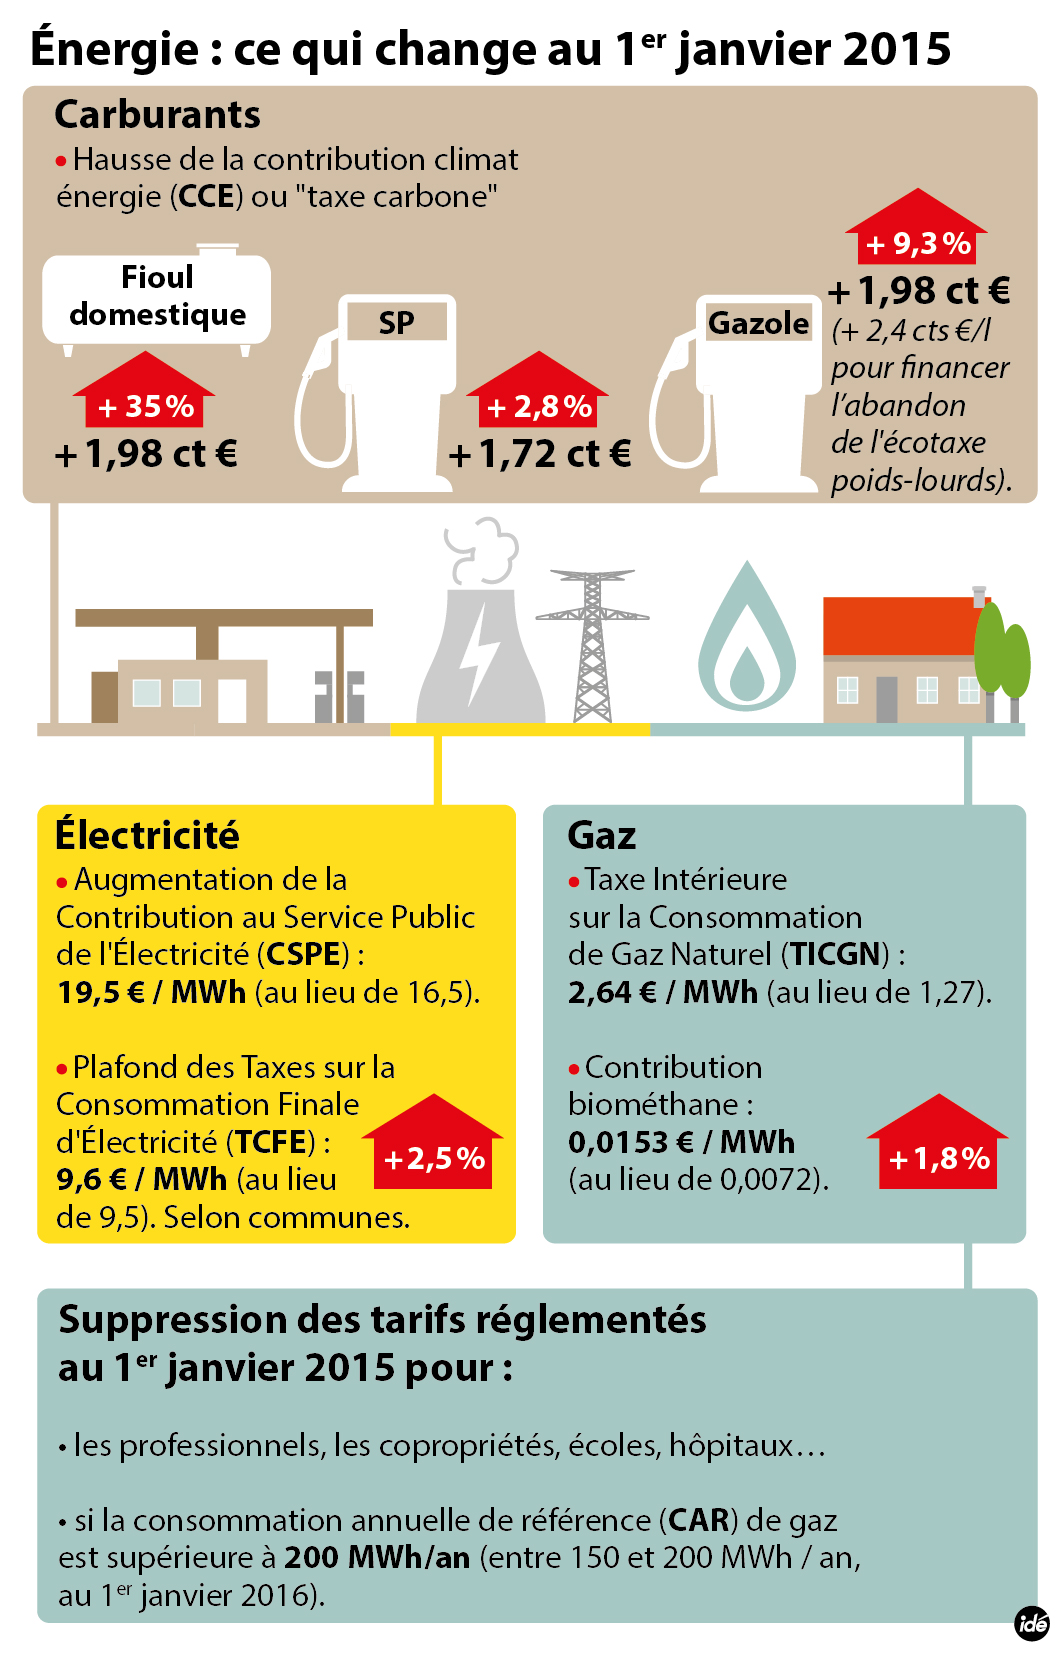 Increases in gas, electricity and fuel from 1 January 2015